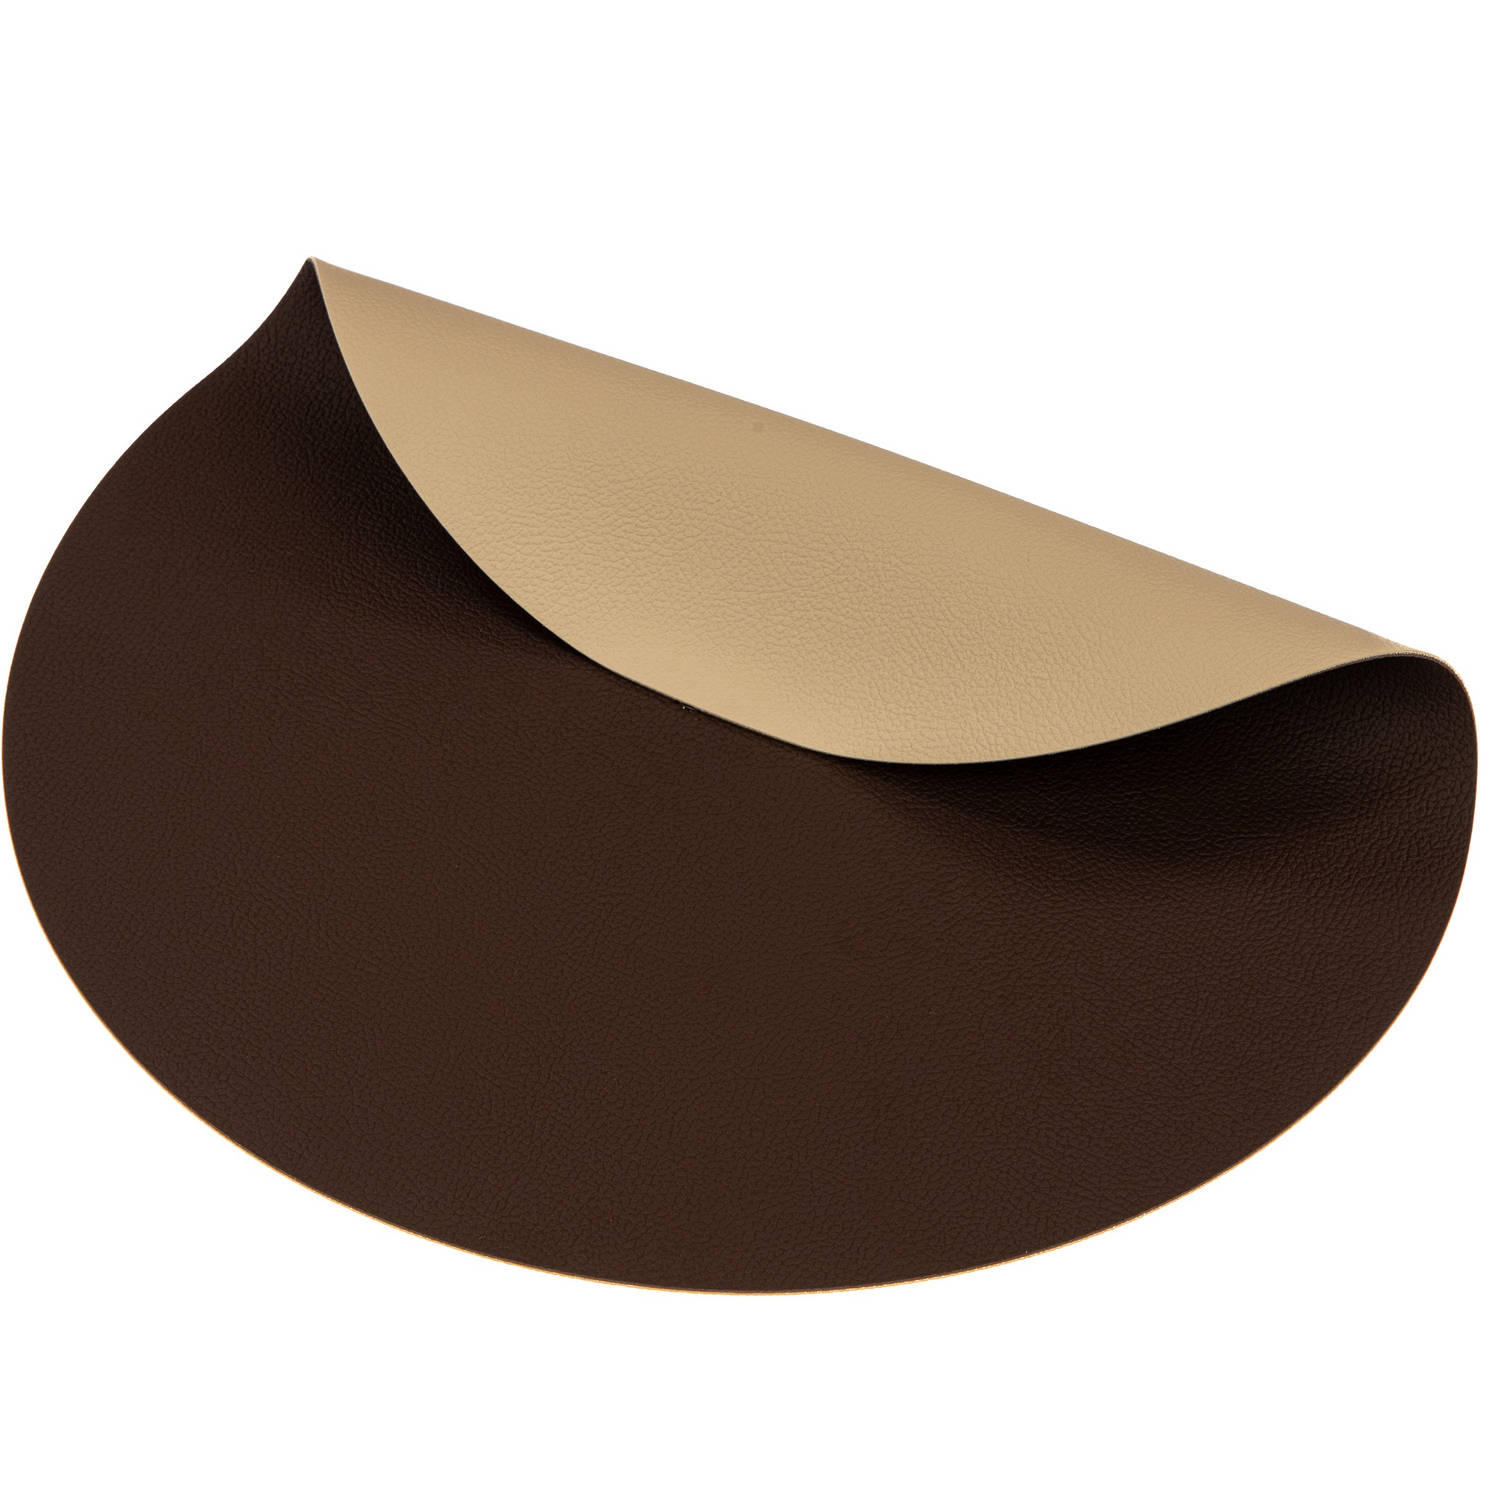 Korting Jay Hill Placemat Rond Leer Bruin Zand Ø 38 Cm